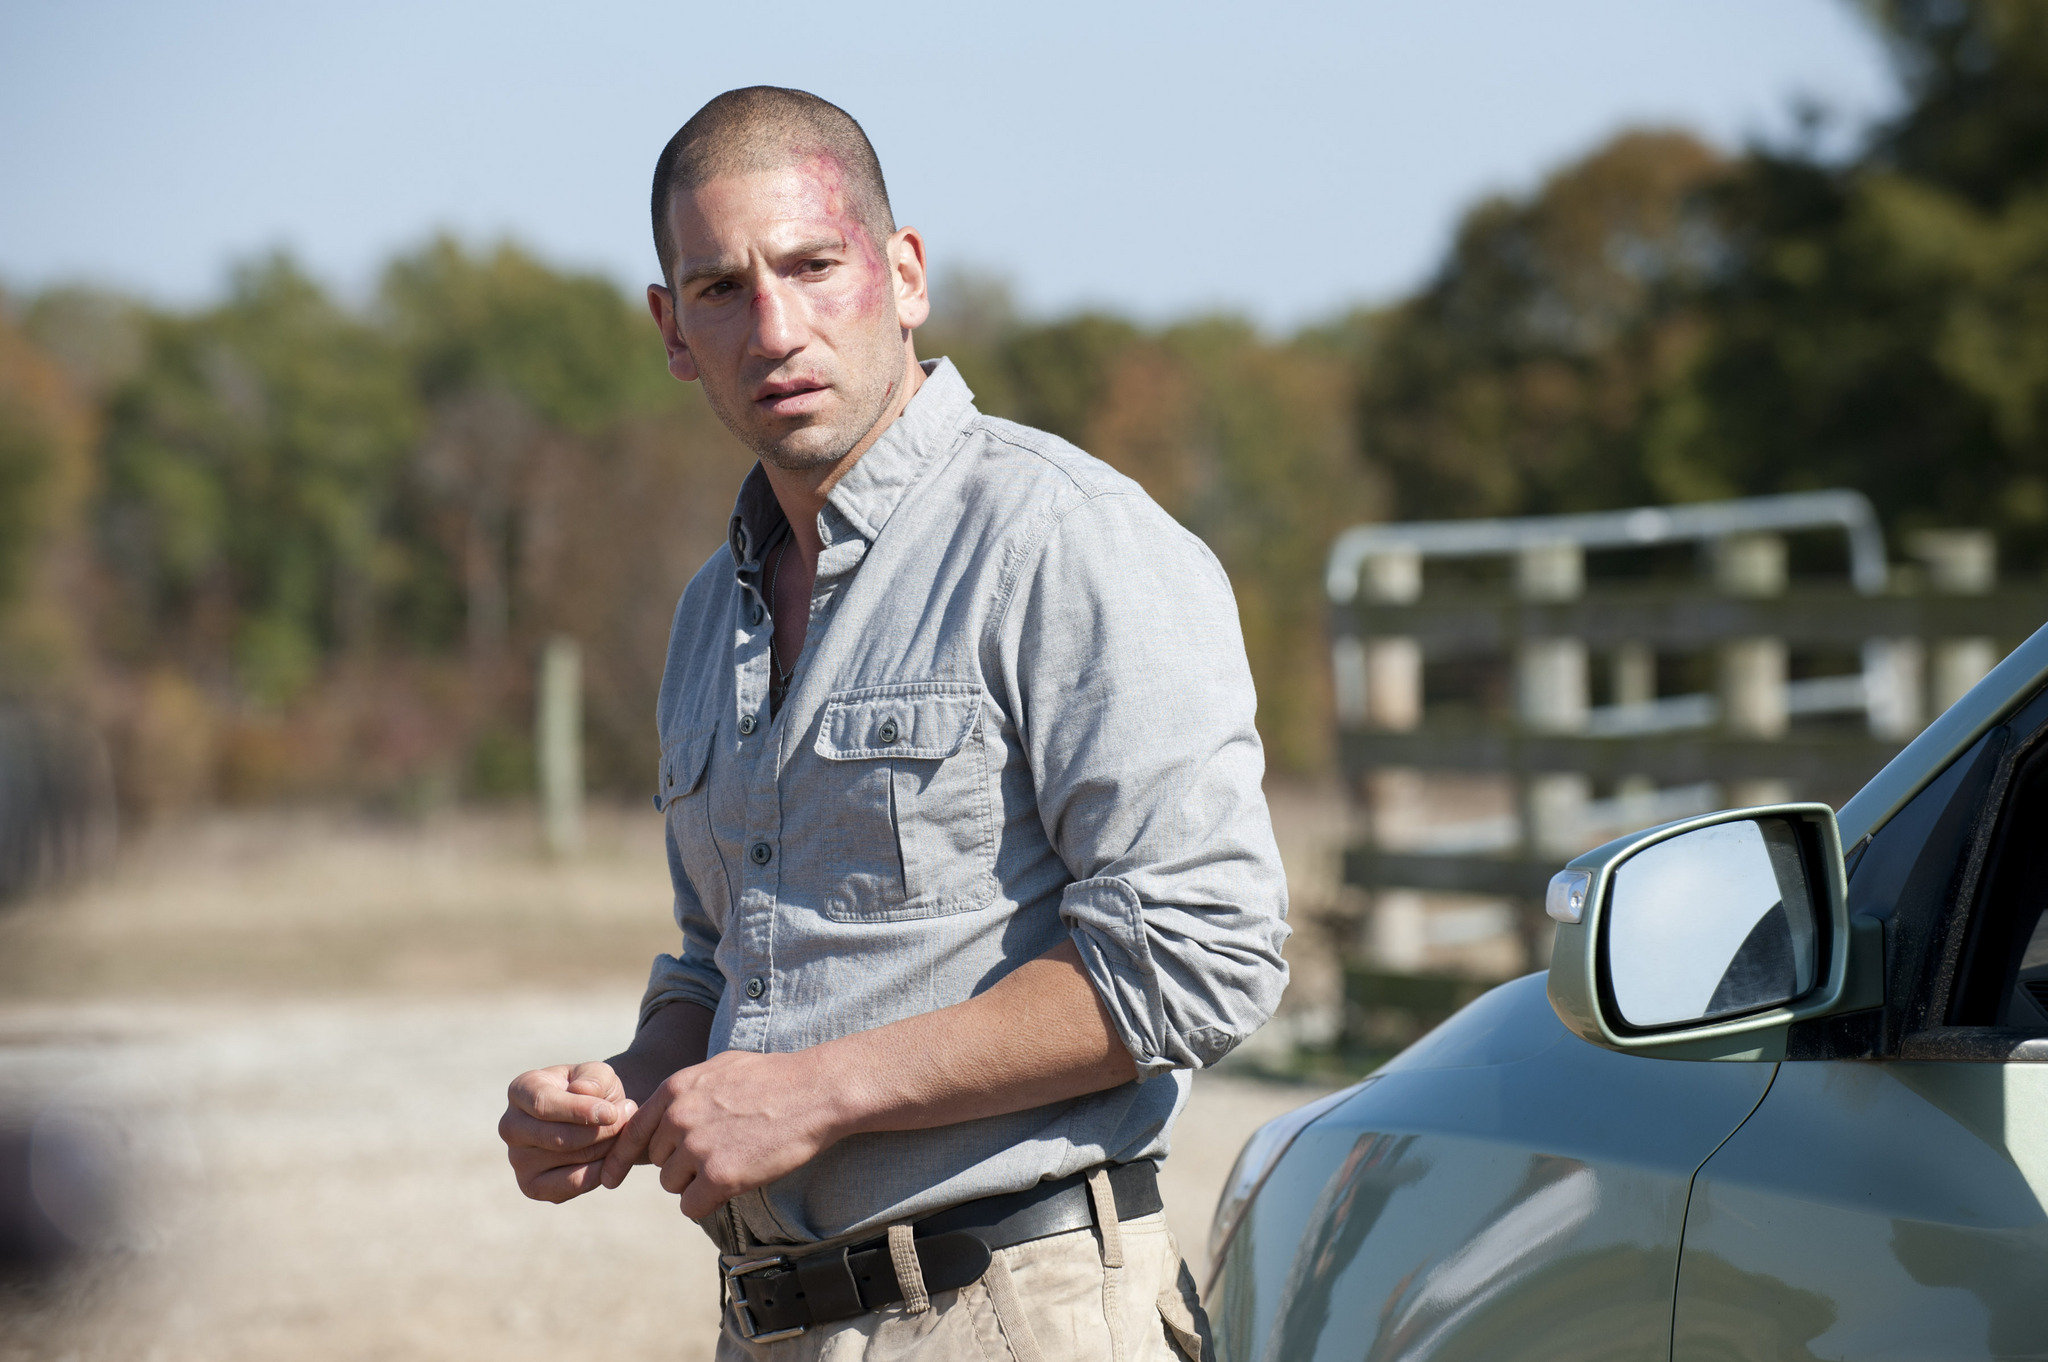 A still from The Walking Dead where Shane Walsh, a character played by actor Jon Bernthal is standing in an empty road. There is a car beside him.